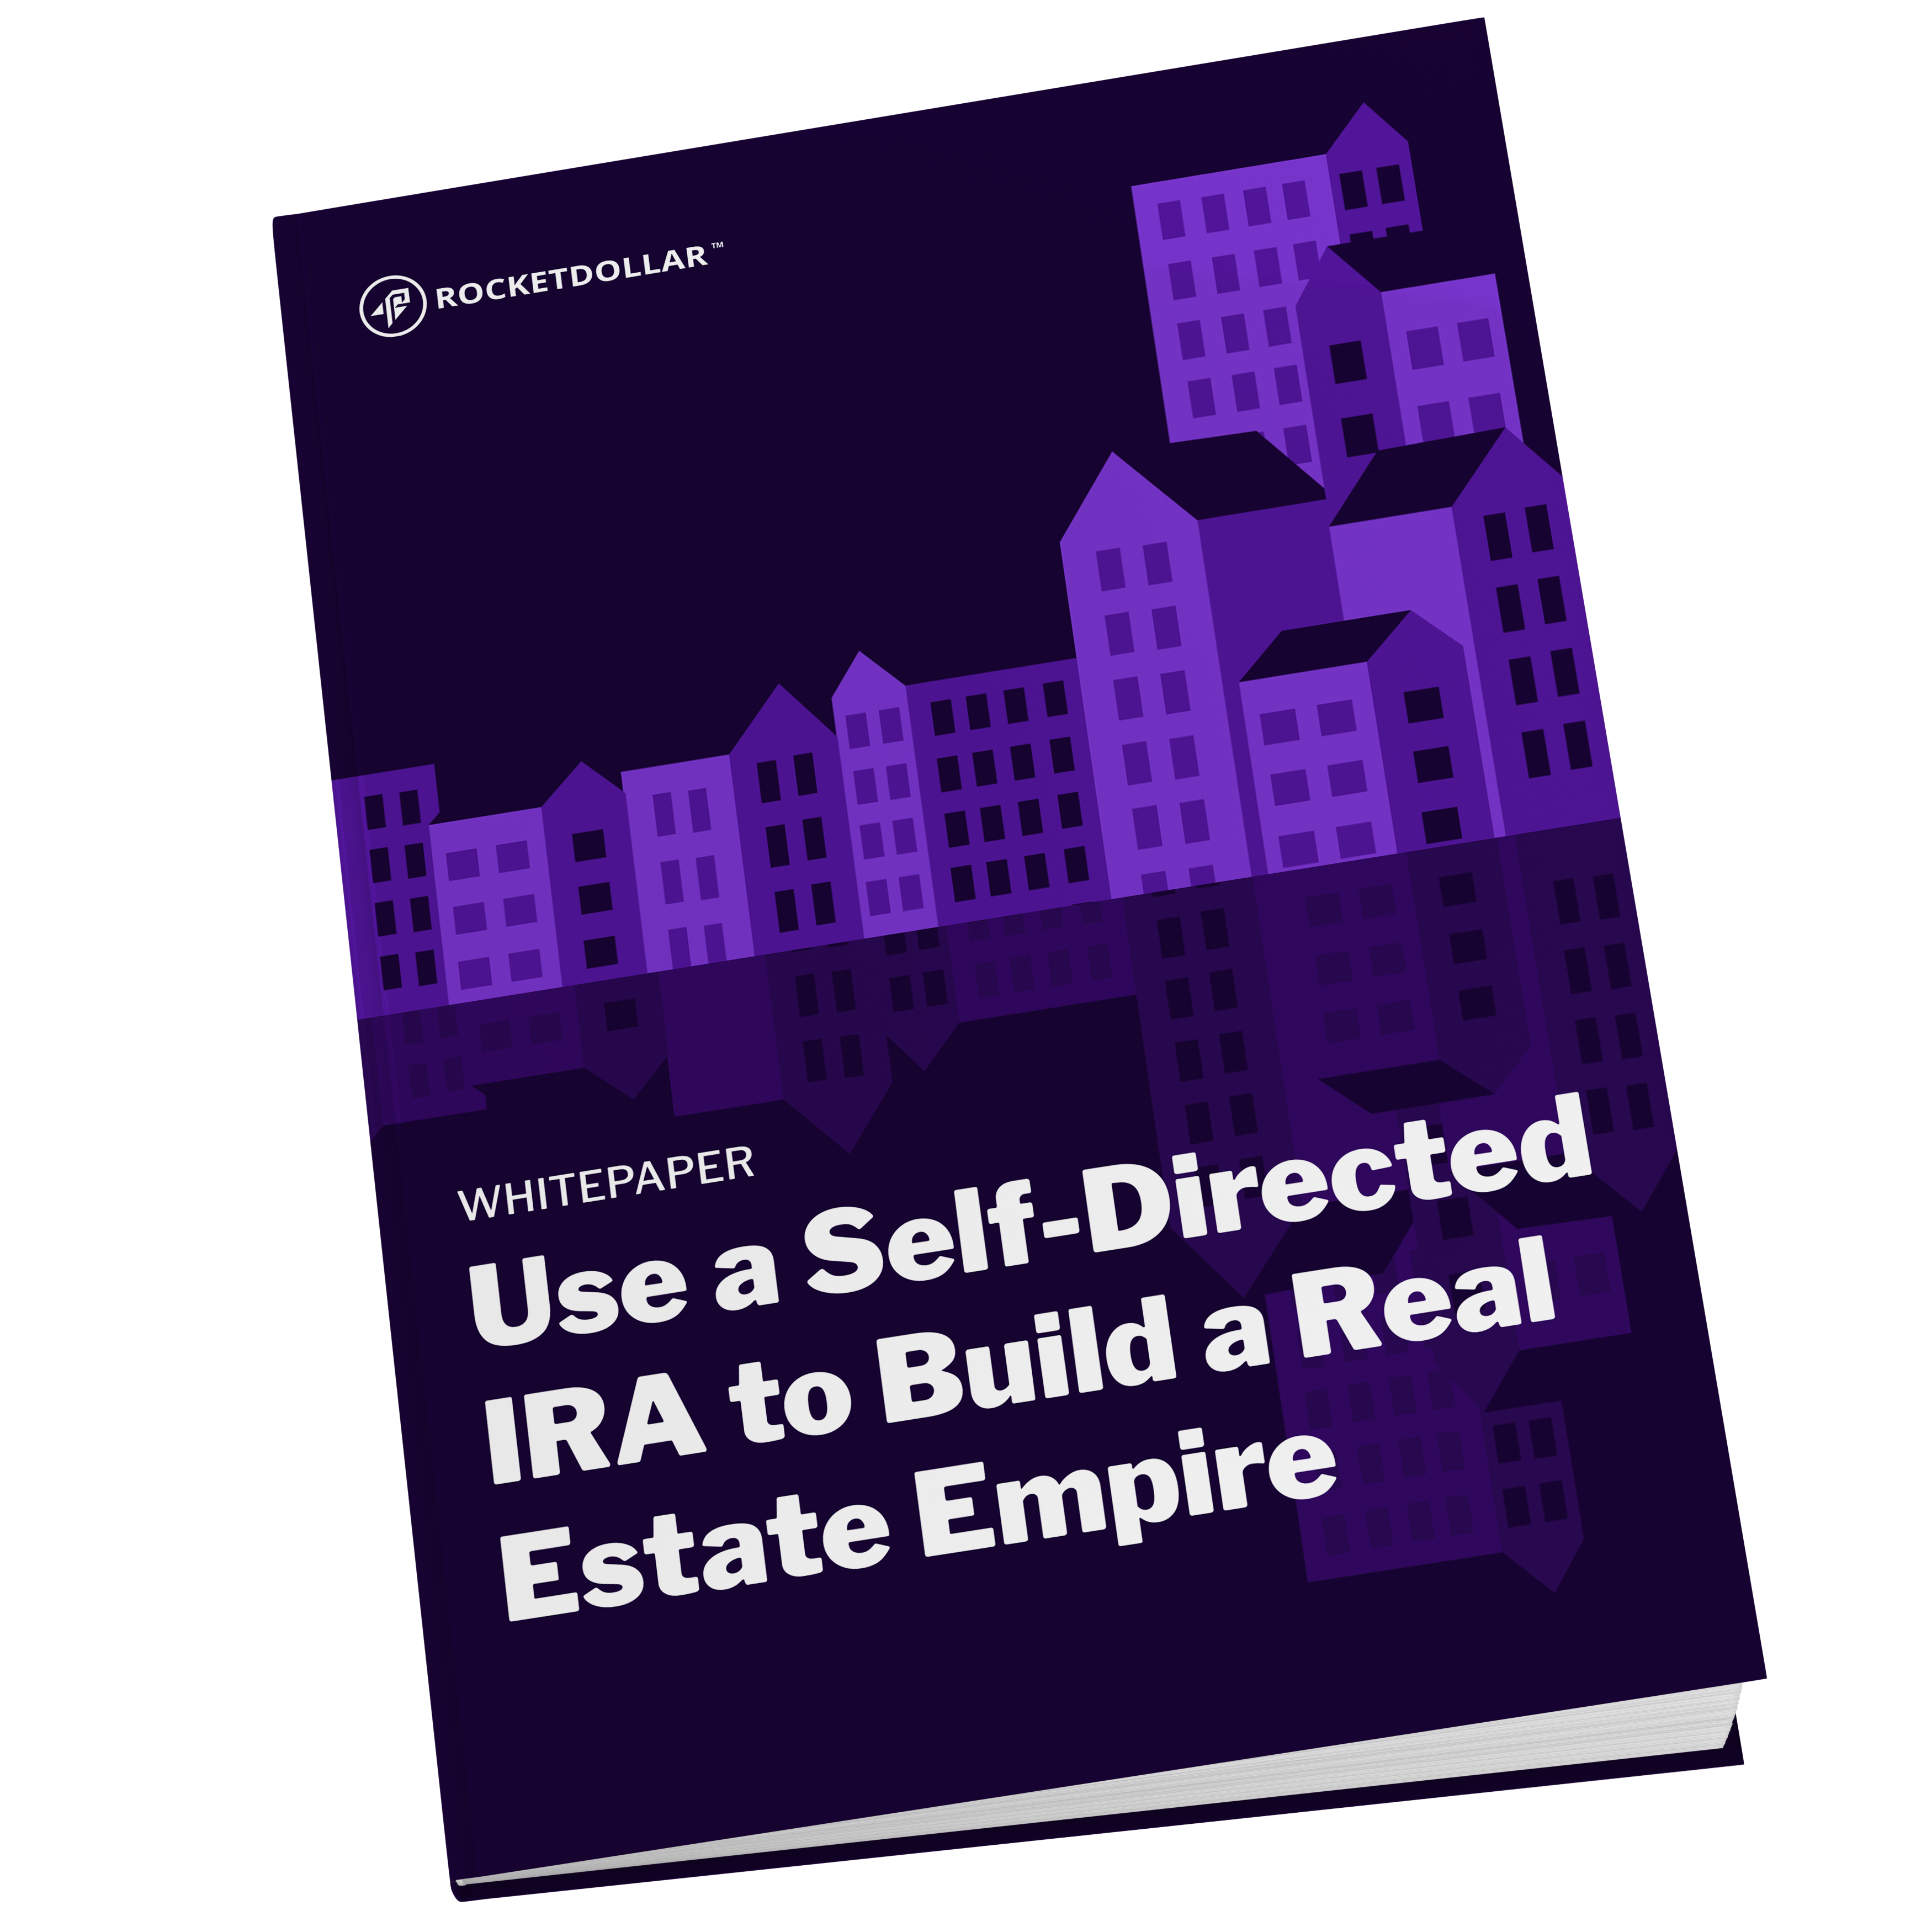 Use a Self-Directed IRA to Build a Real Estate Empire